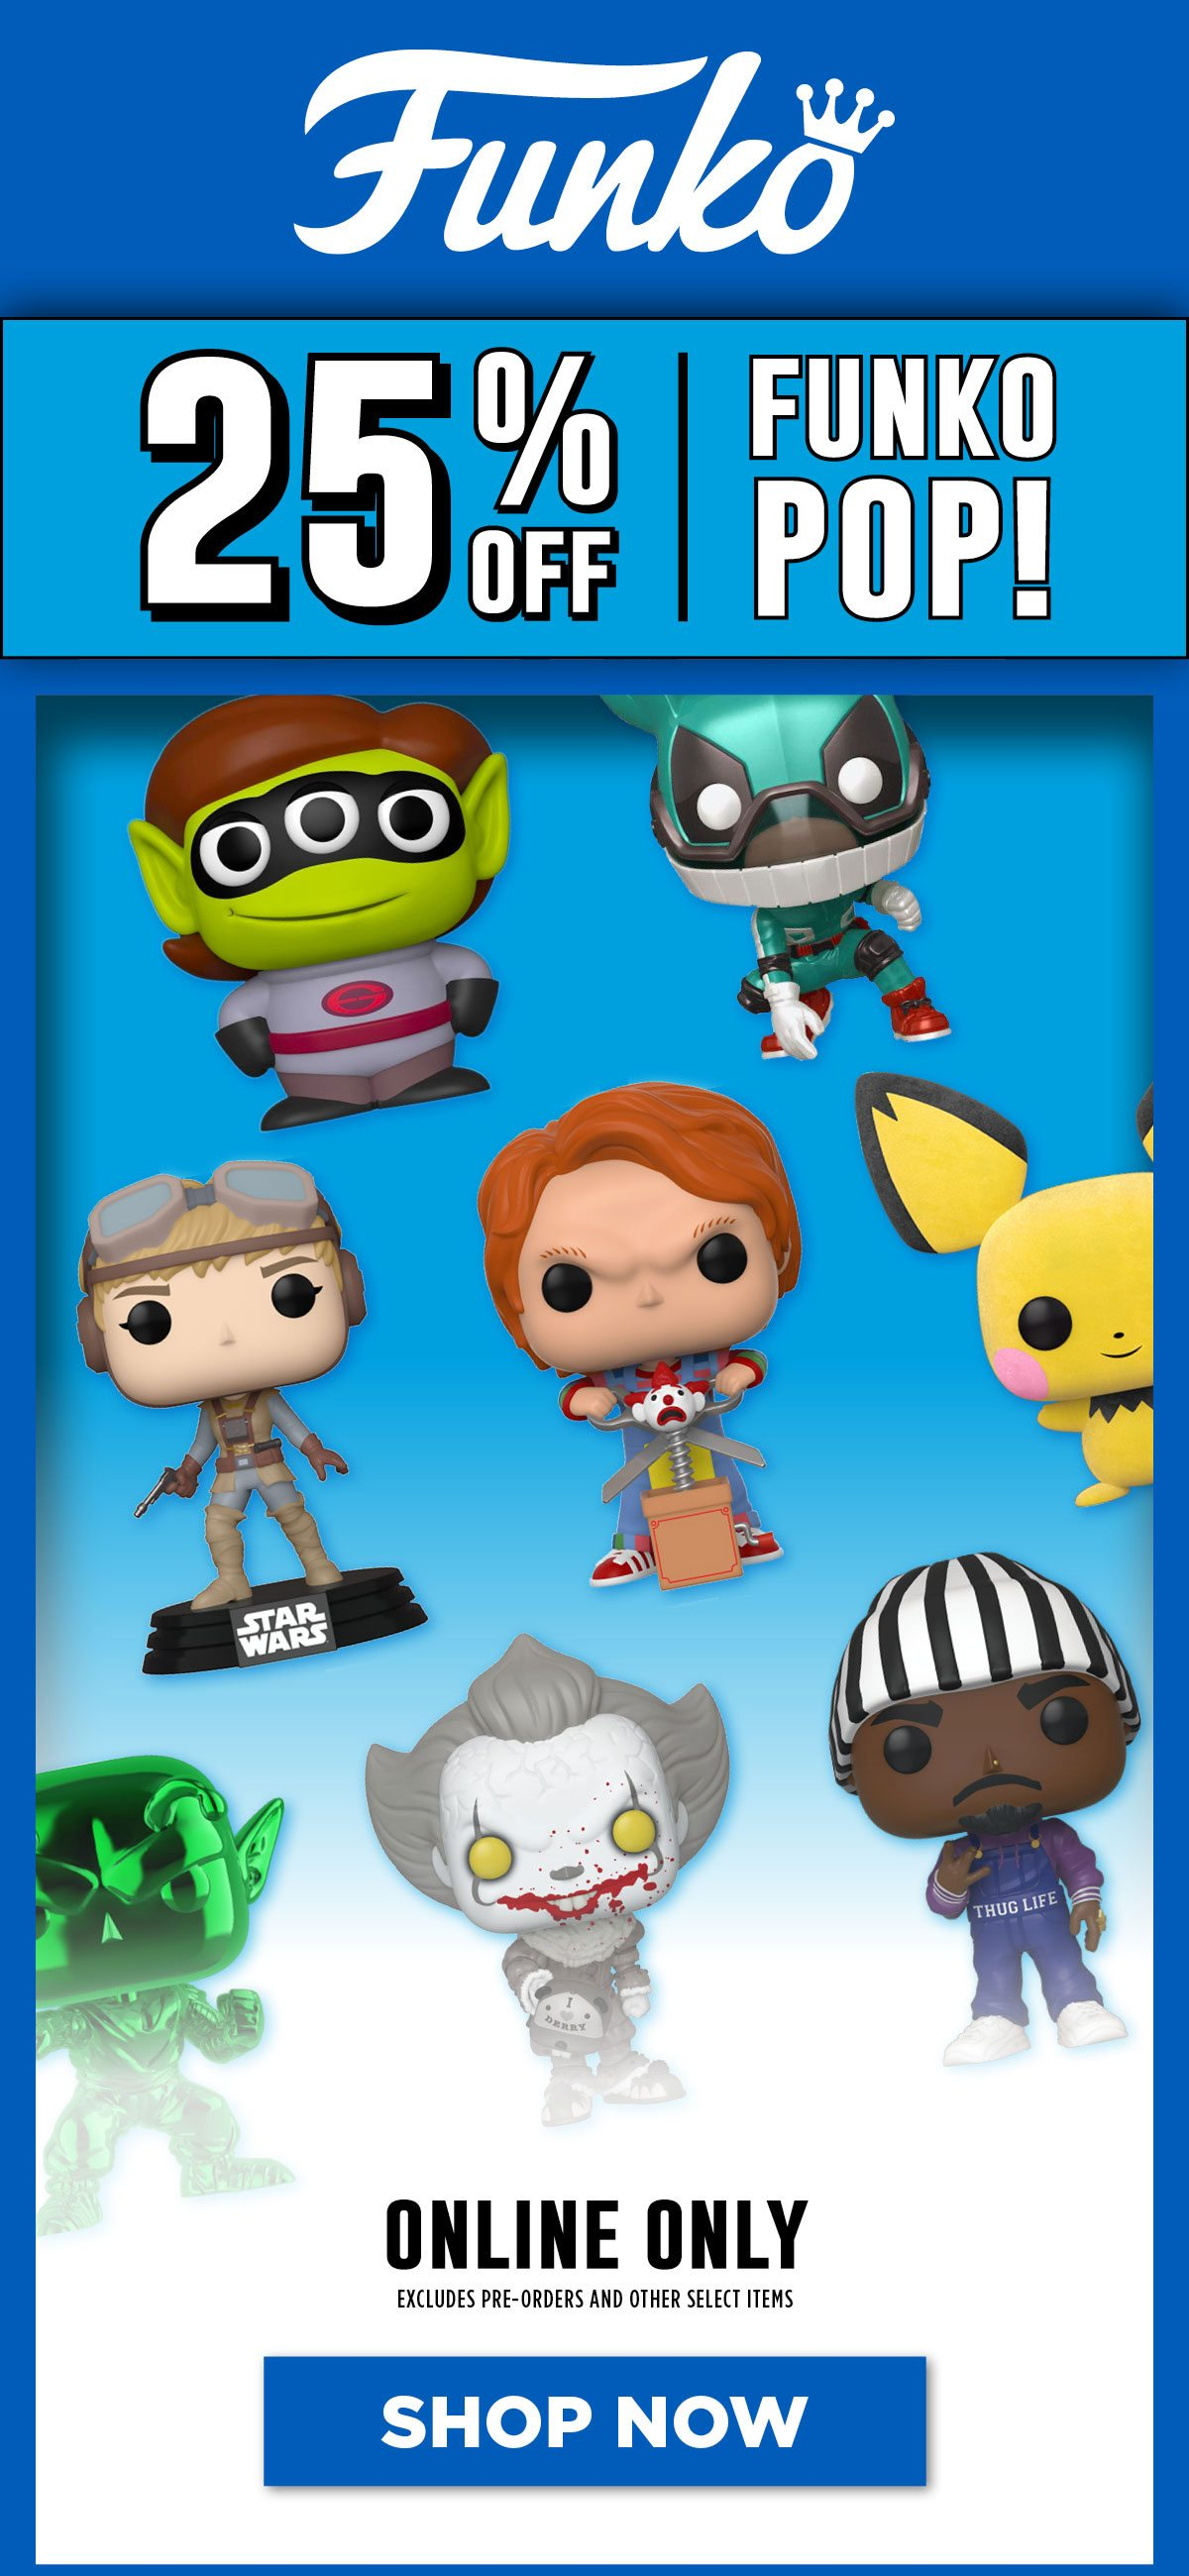 25% off all Funko Pop! Vinyl